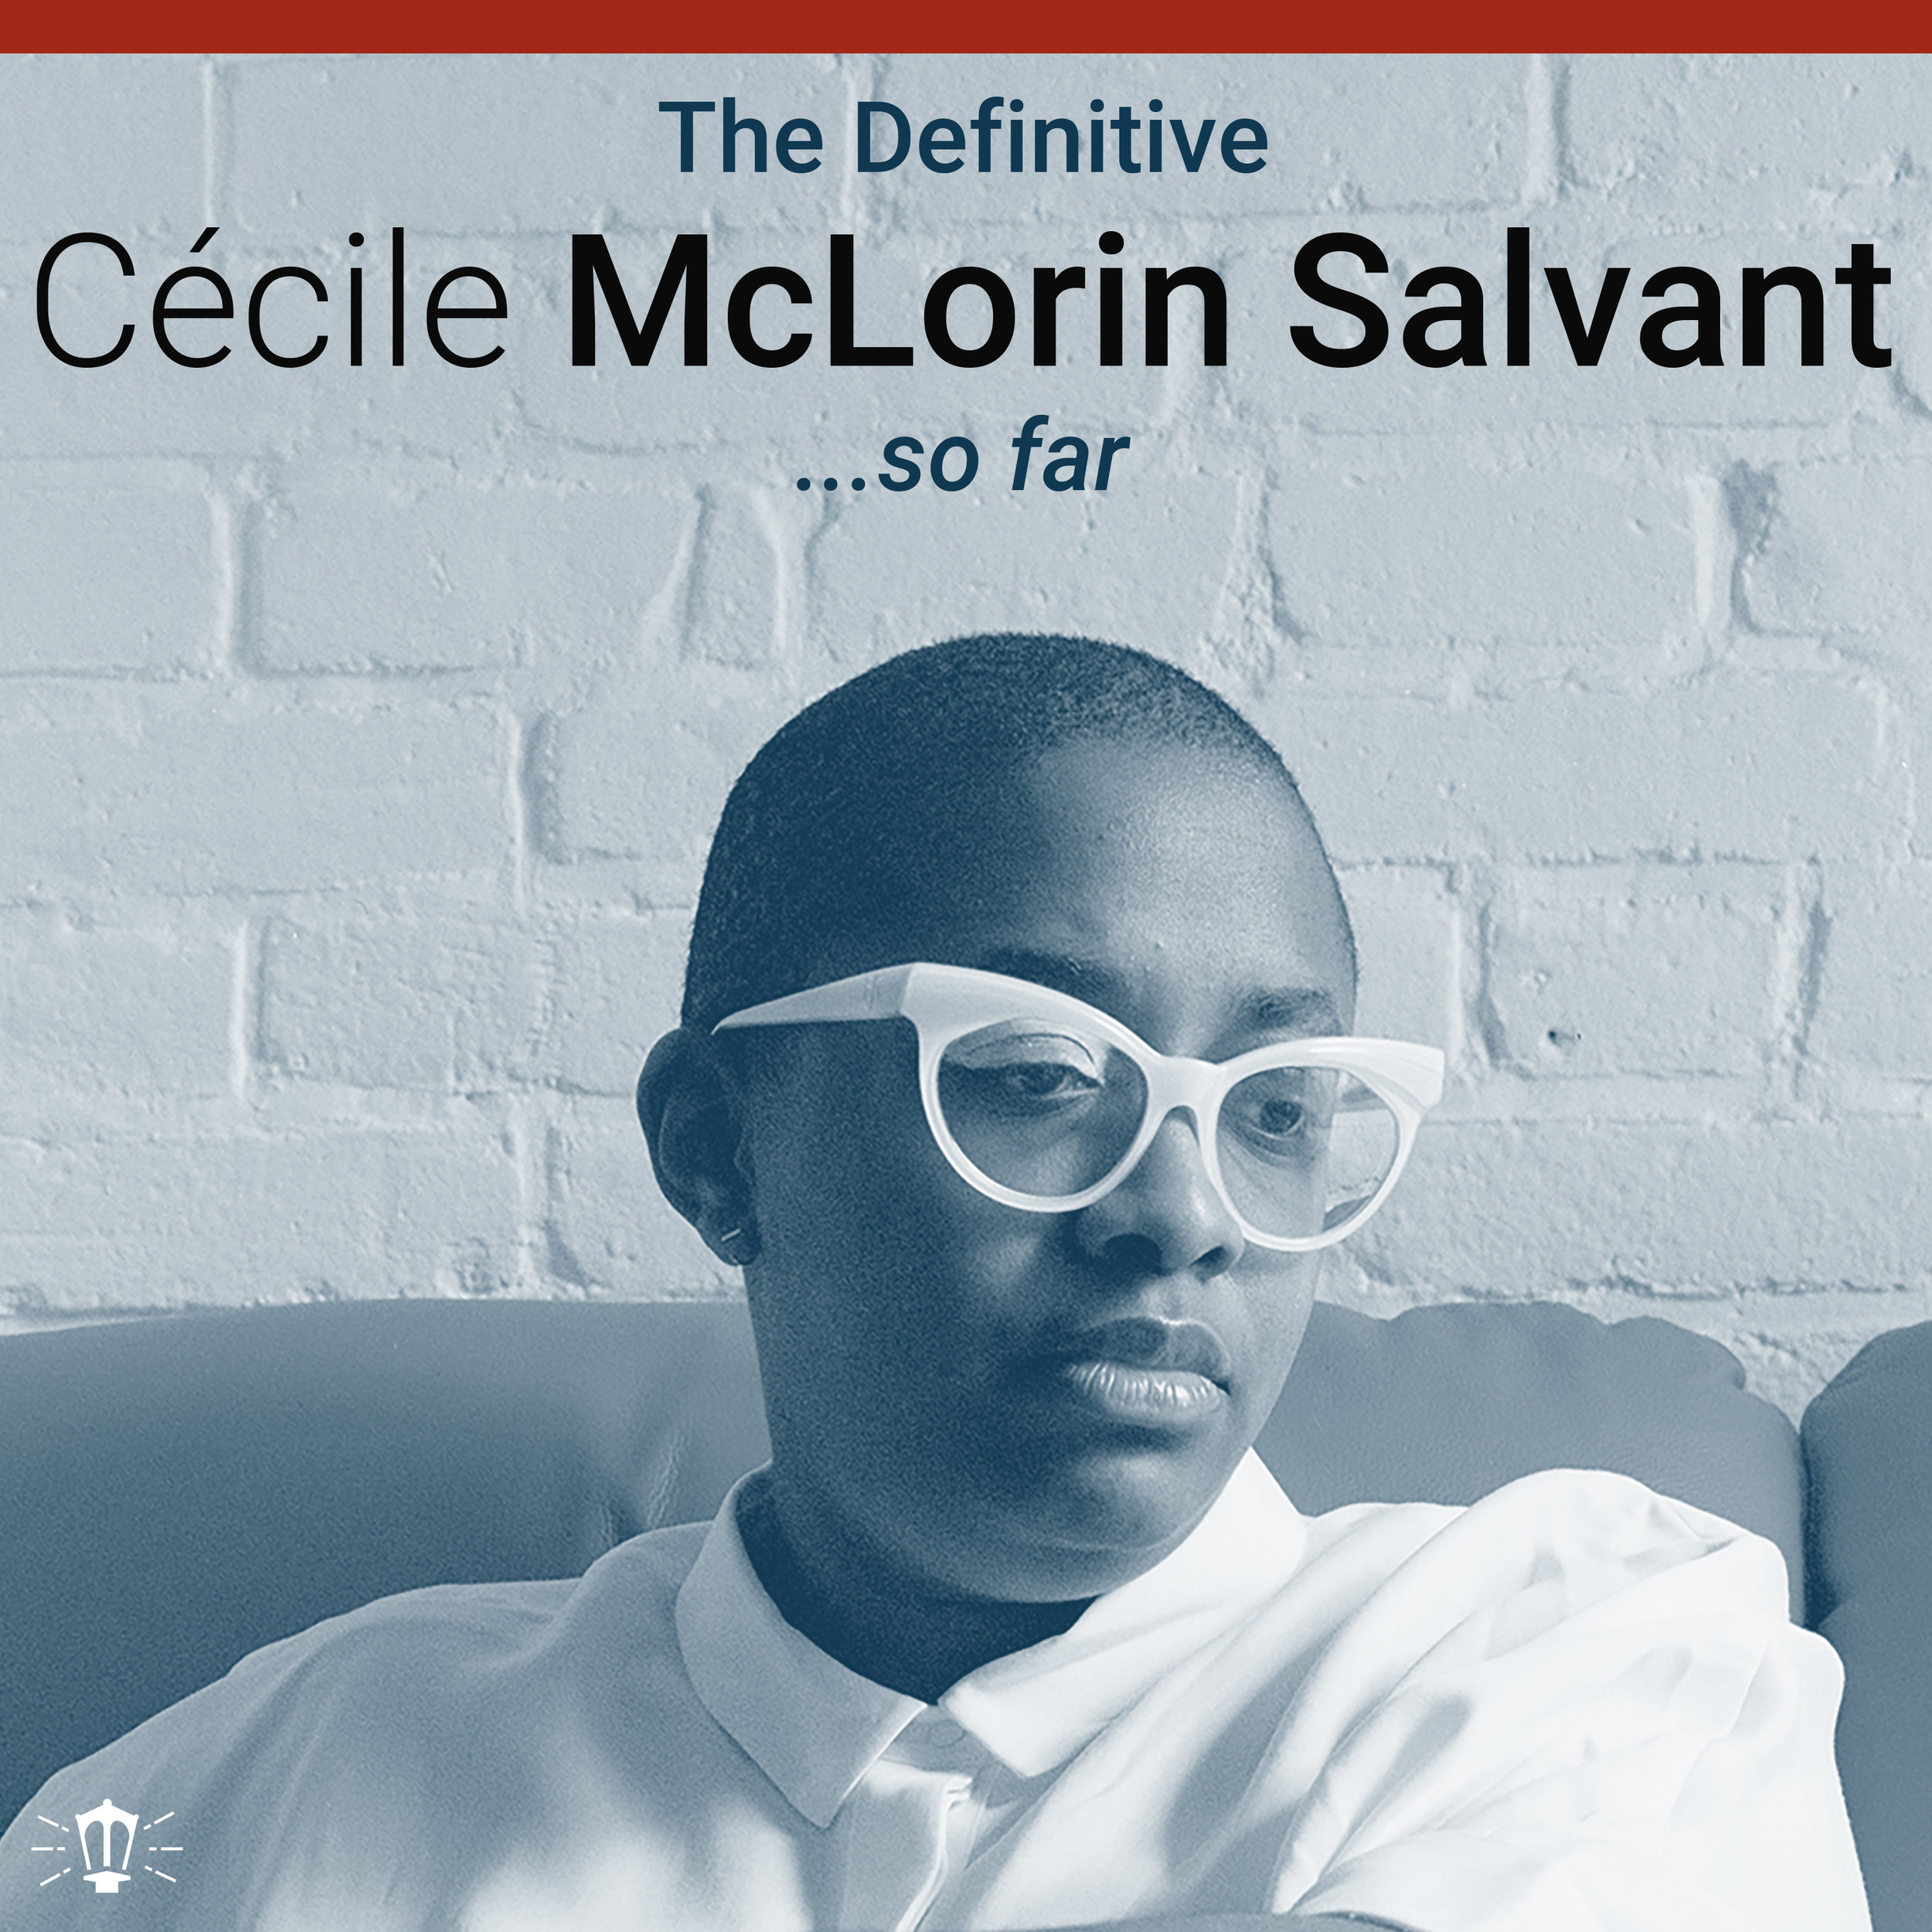 Definitive Cecile McLorin Salvant